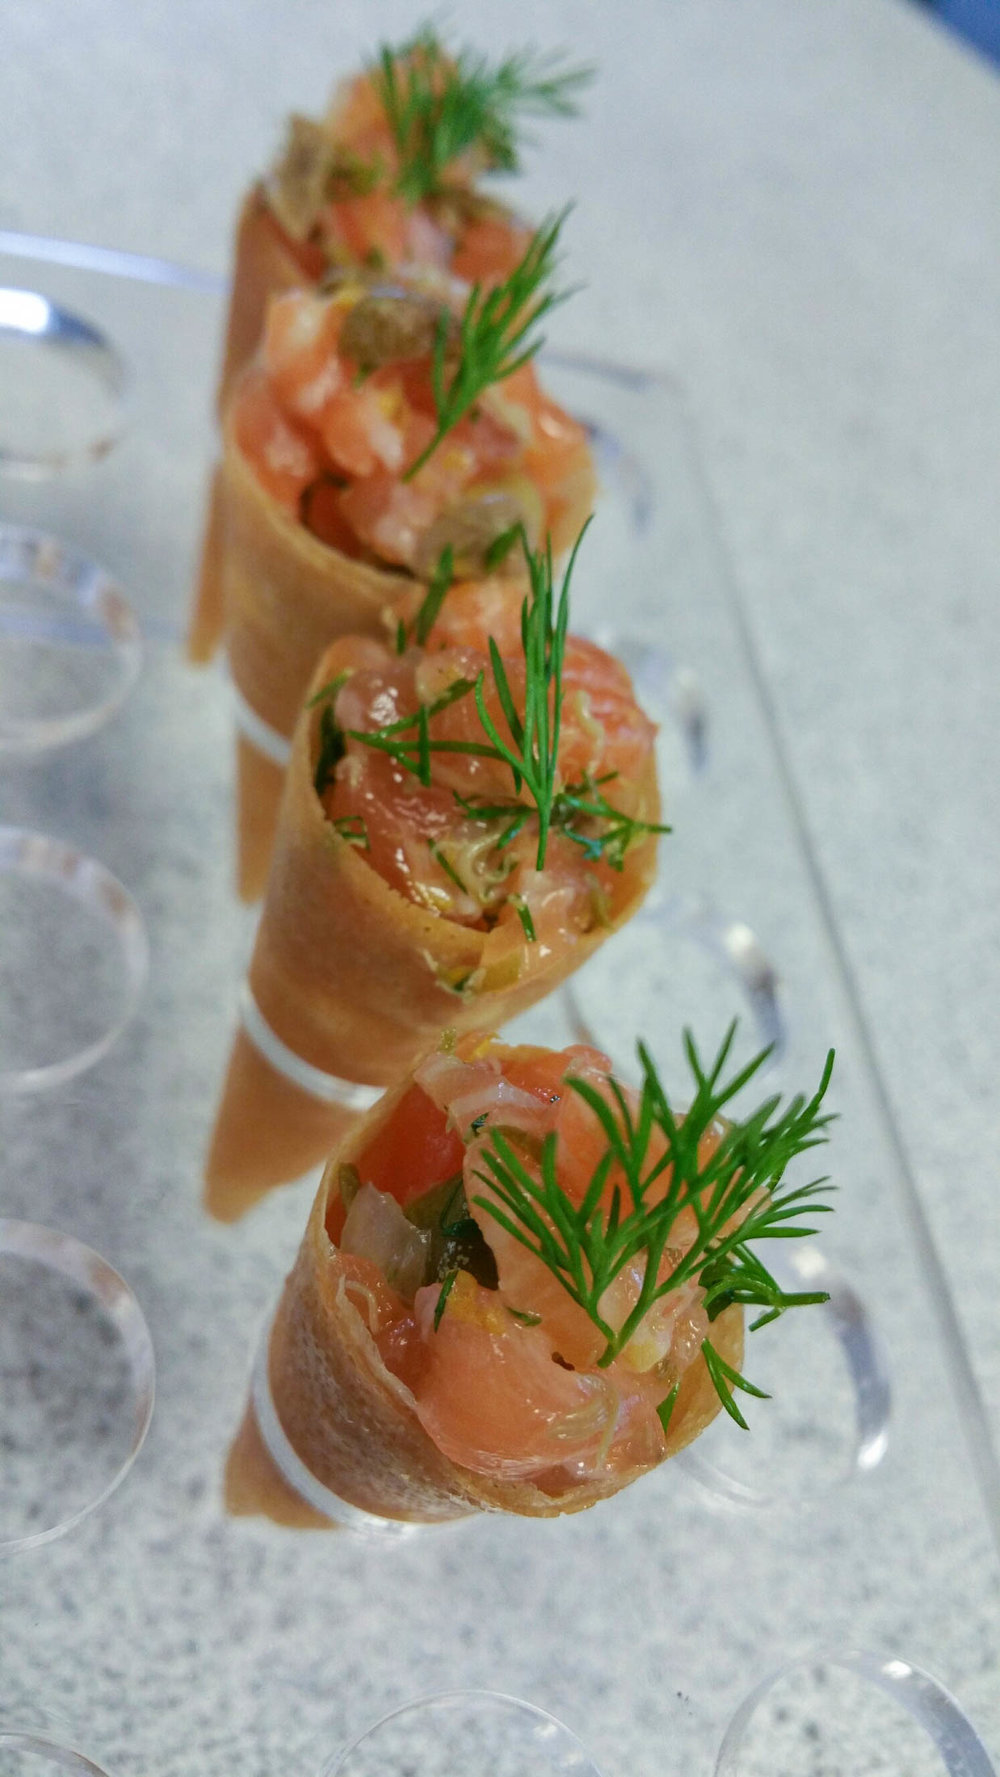 platter-and-slate-catering-deanna-smith-25.jpg